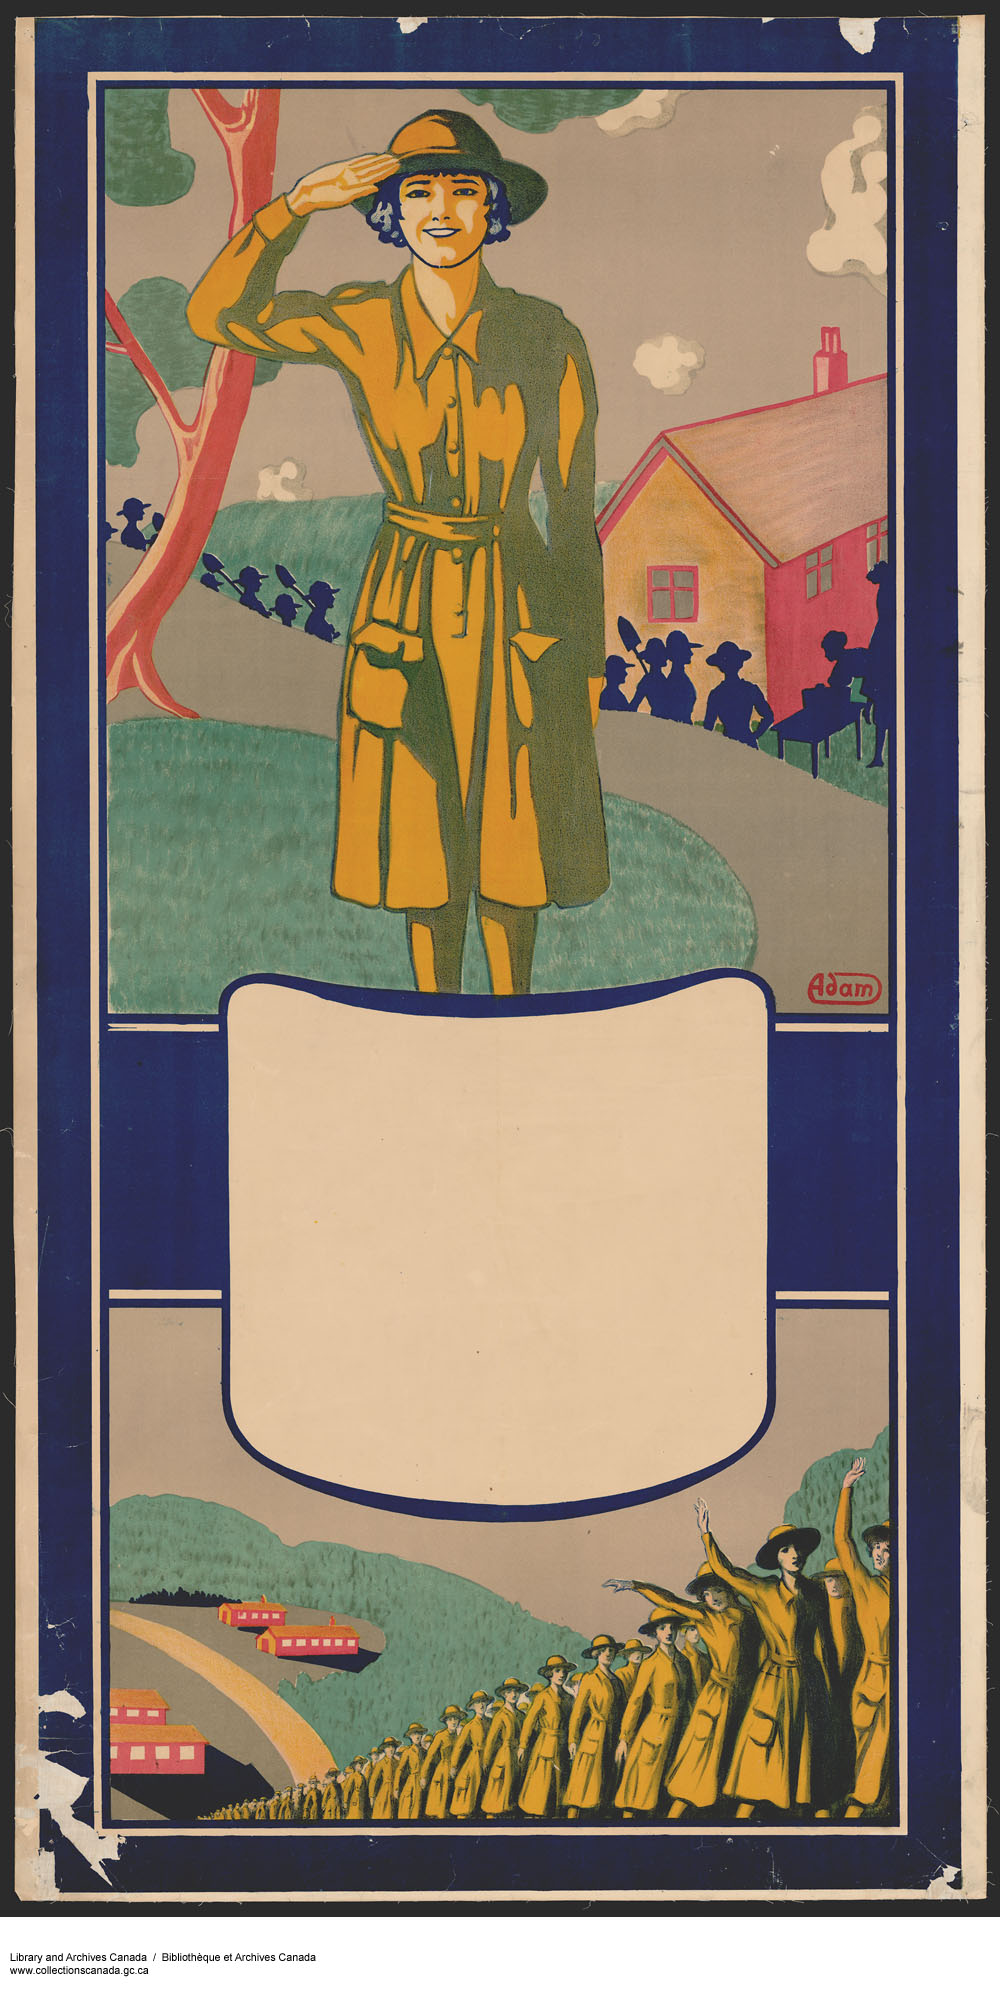 WWI Fr. Cdn recruitment poster